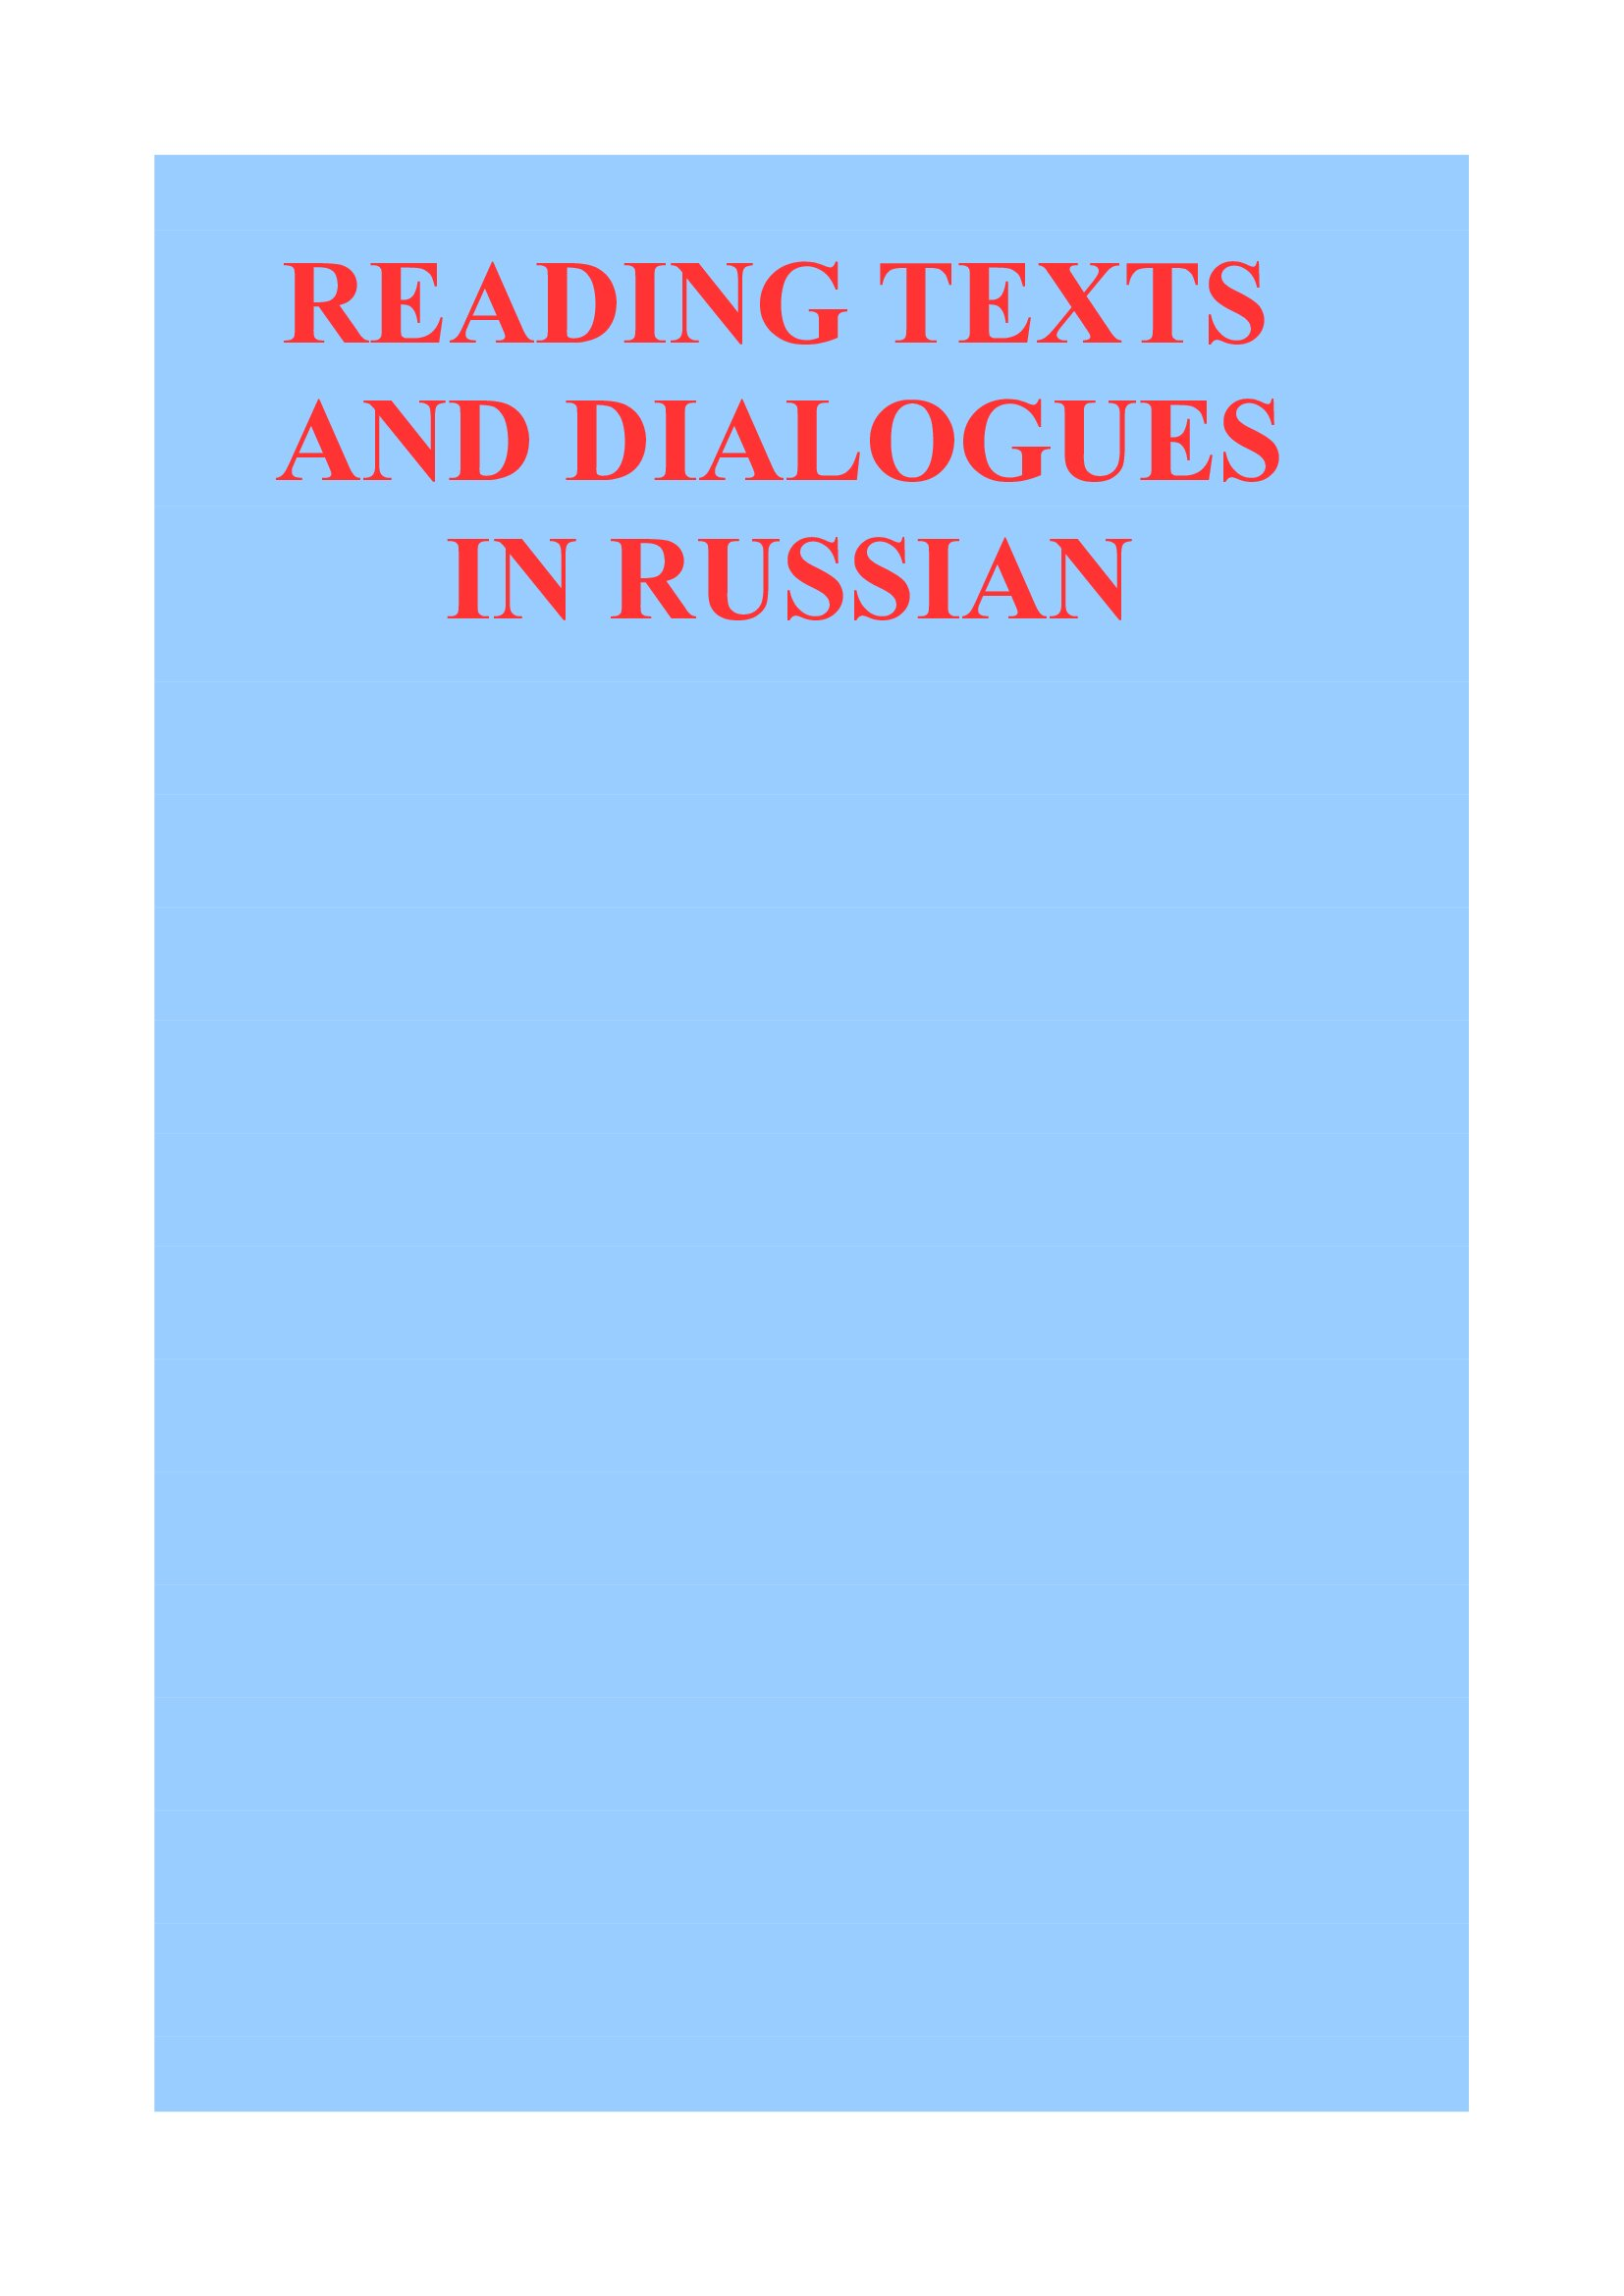 Reading Texts and Dialogues in Russian